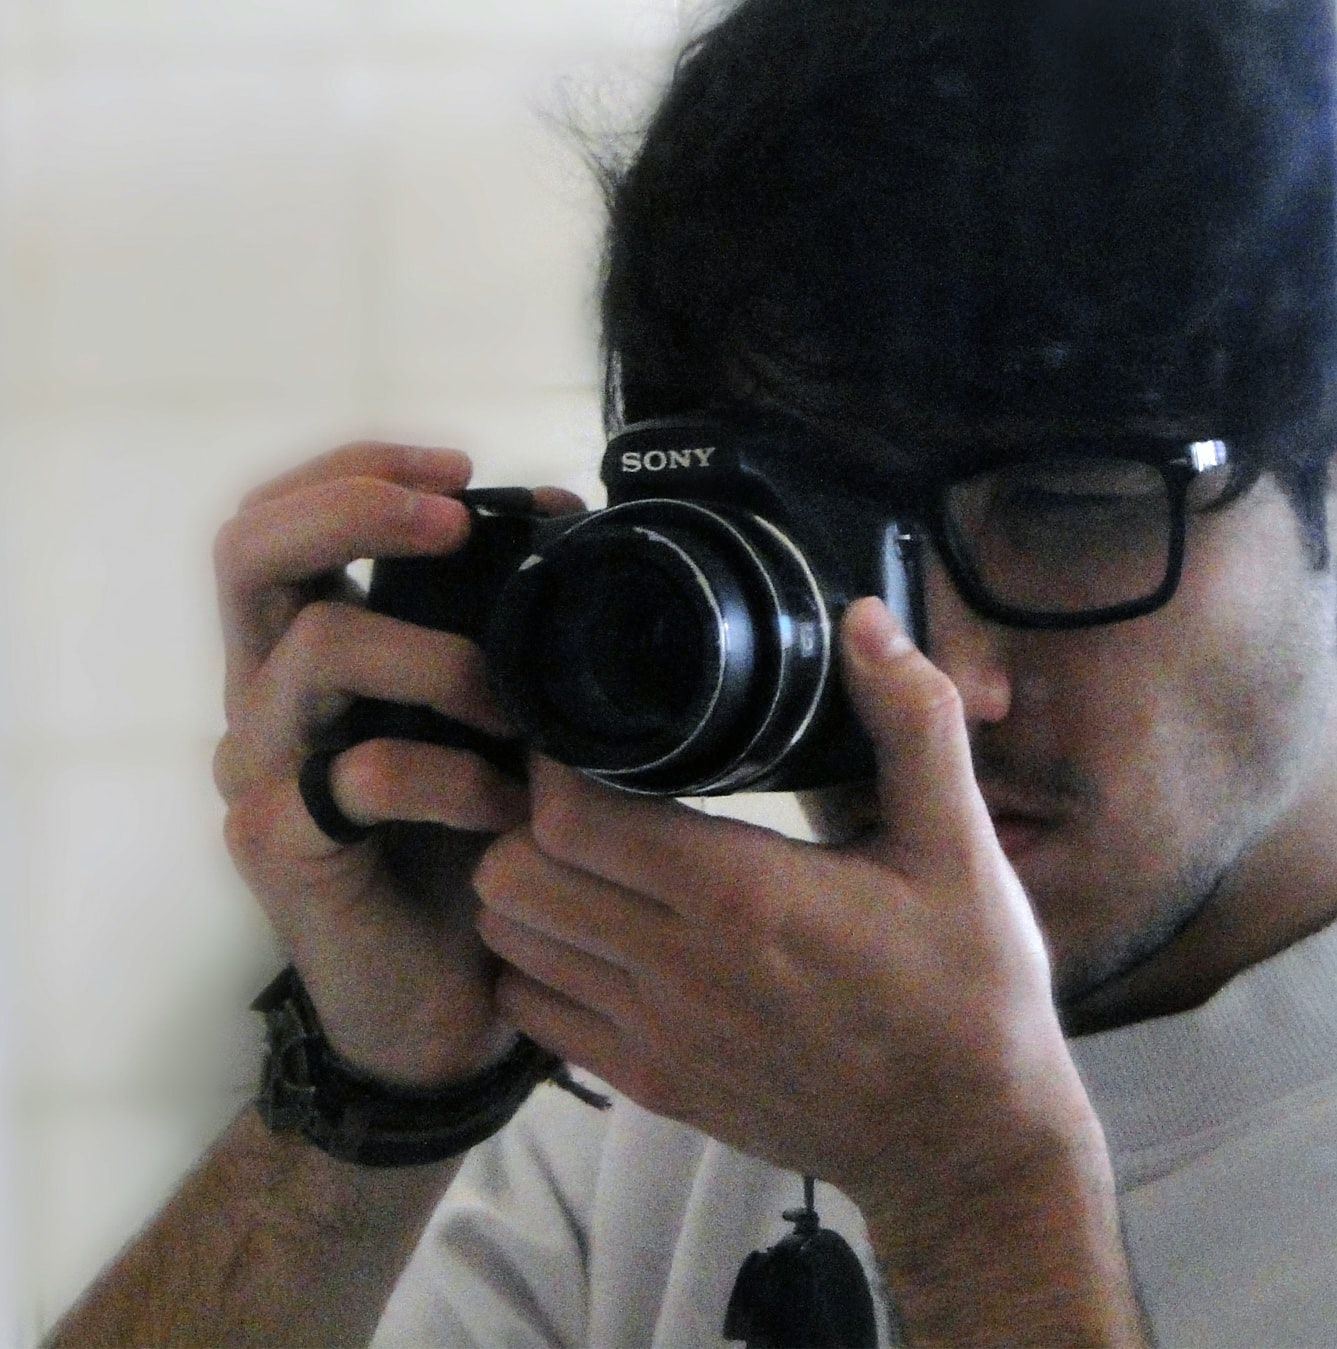 Avatar of user Alexandre Mesquita